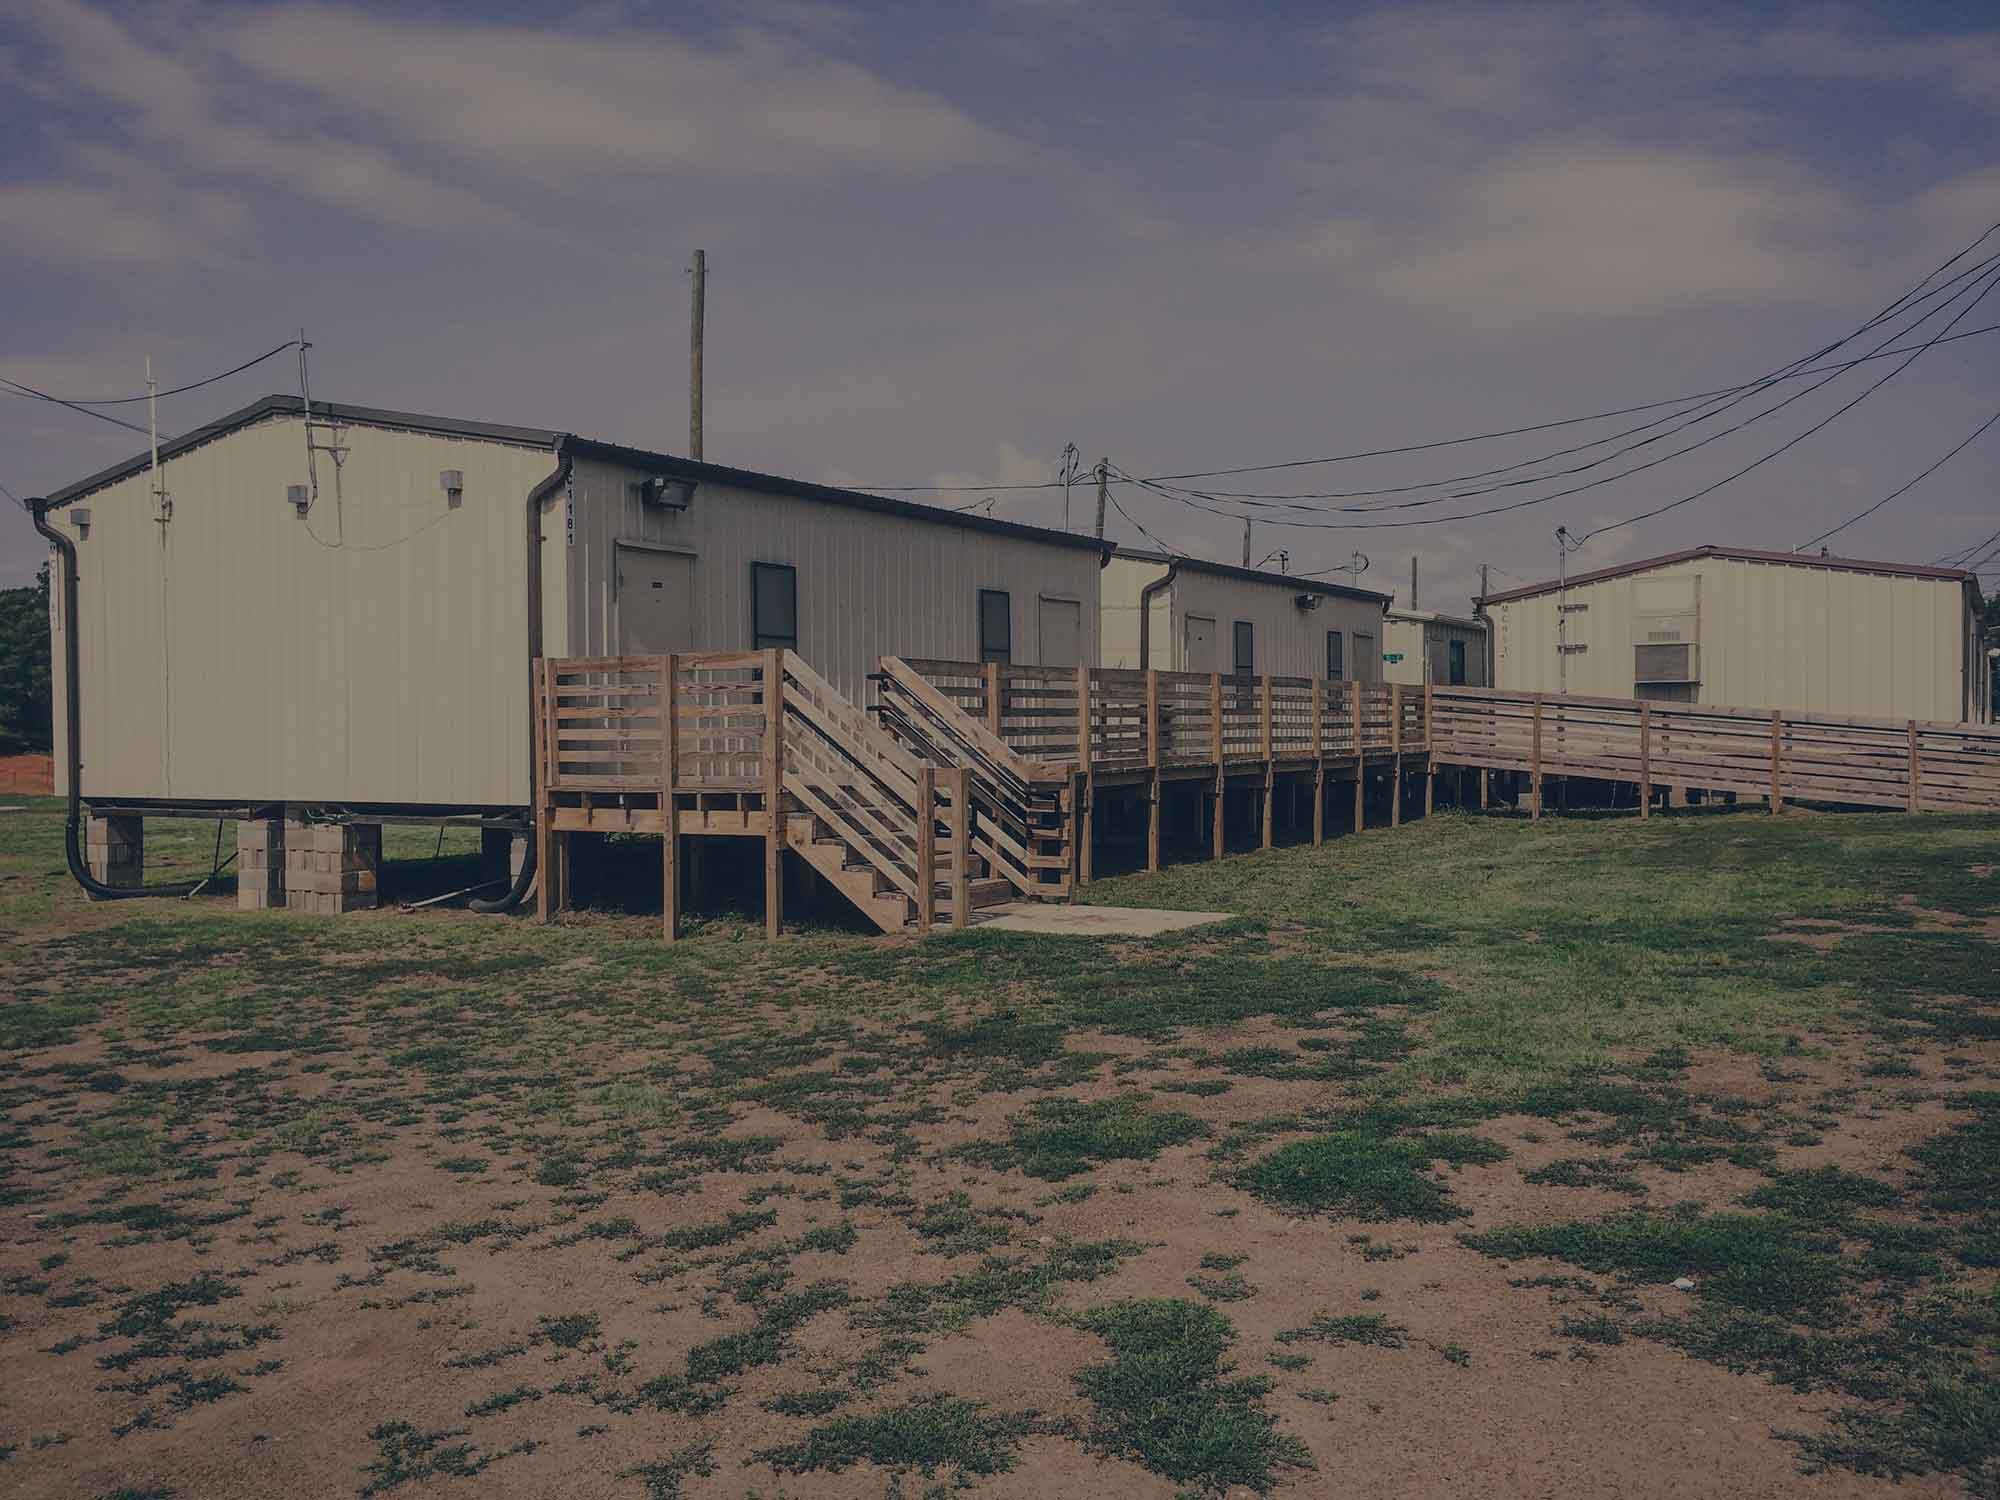 4 Ways to Design Outdoor Wireless Networks for Mobile Classrooms